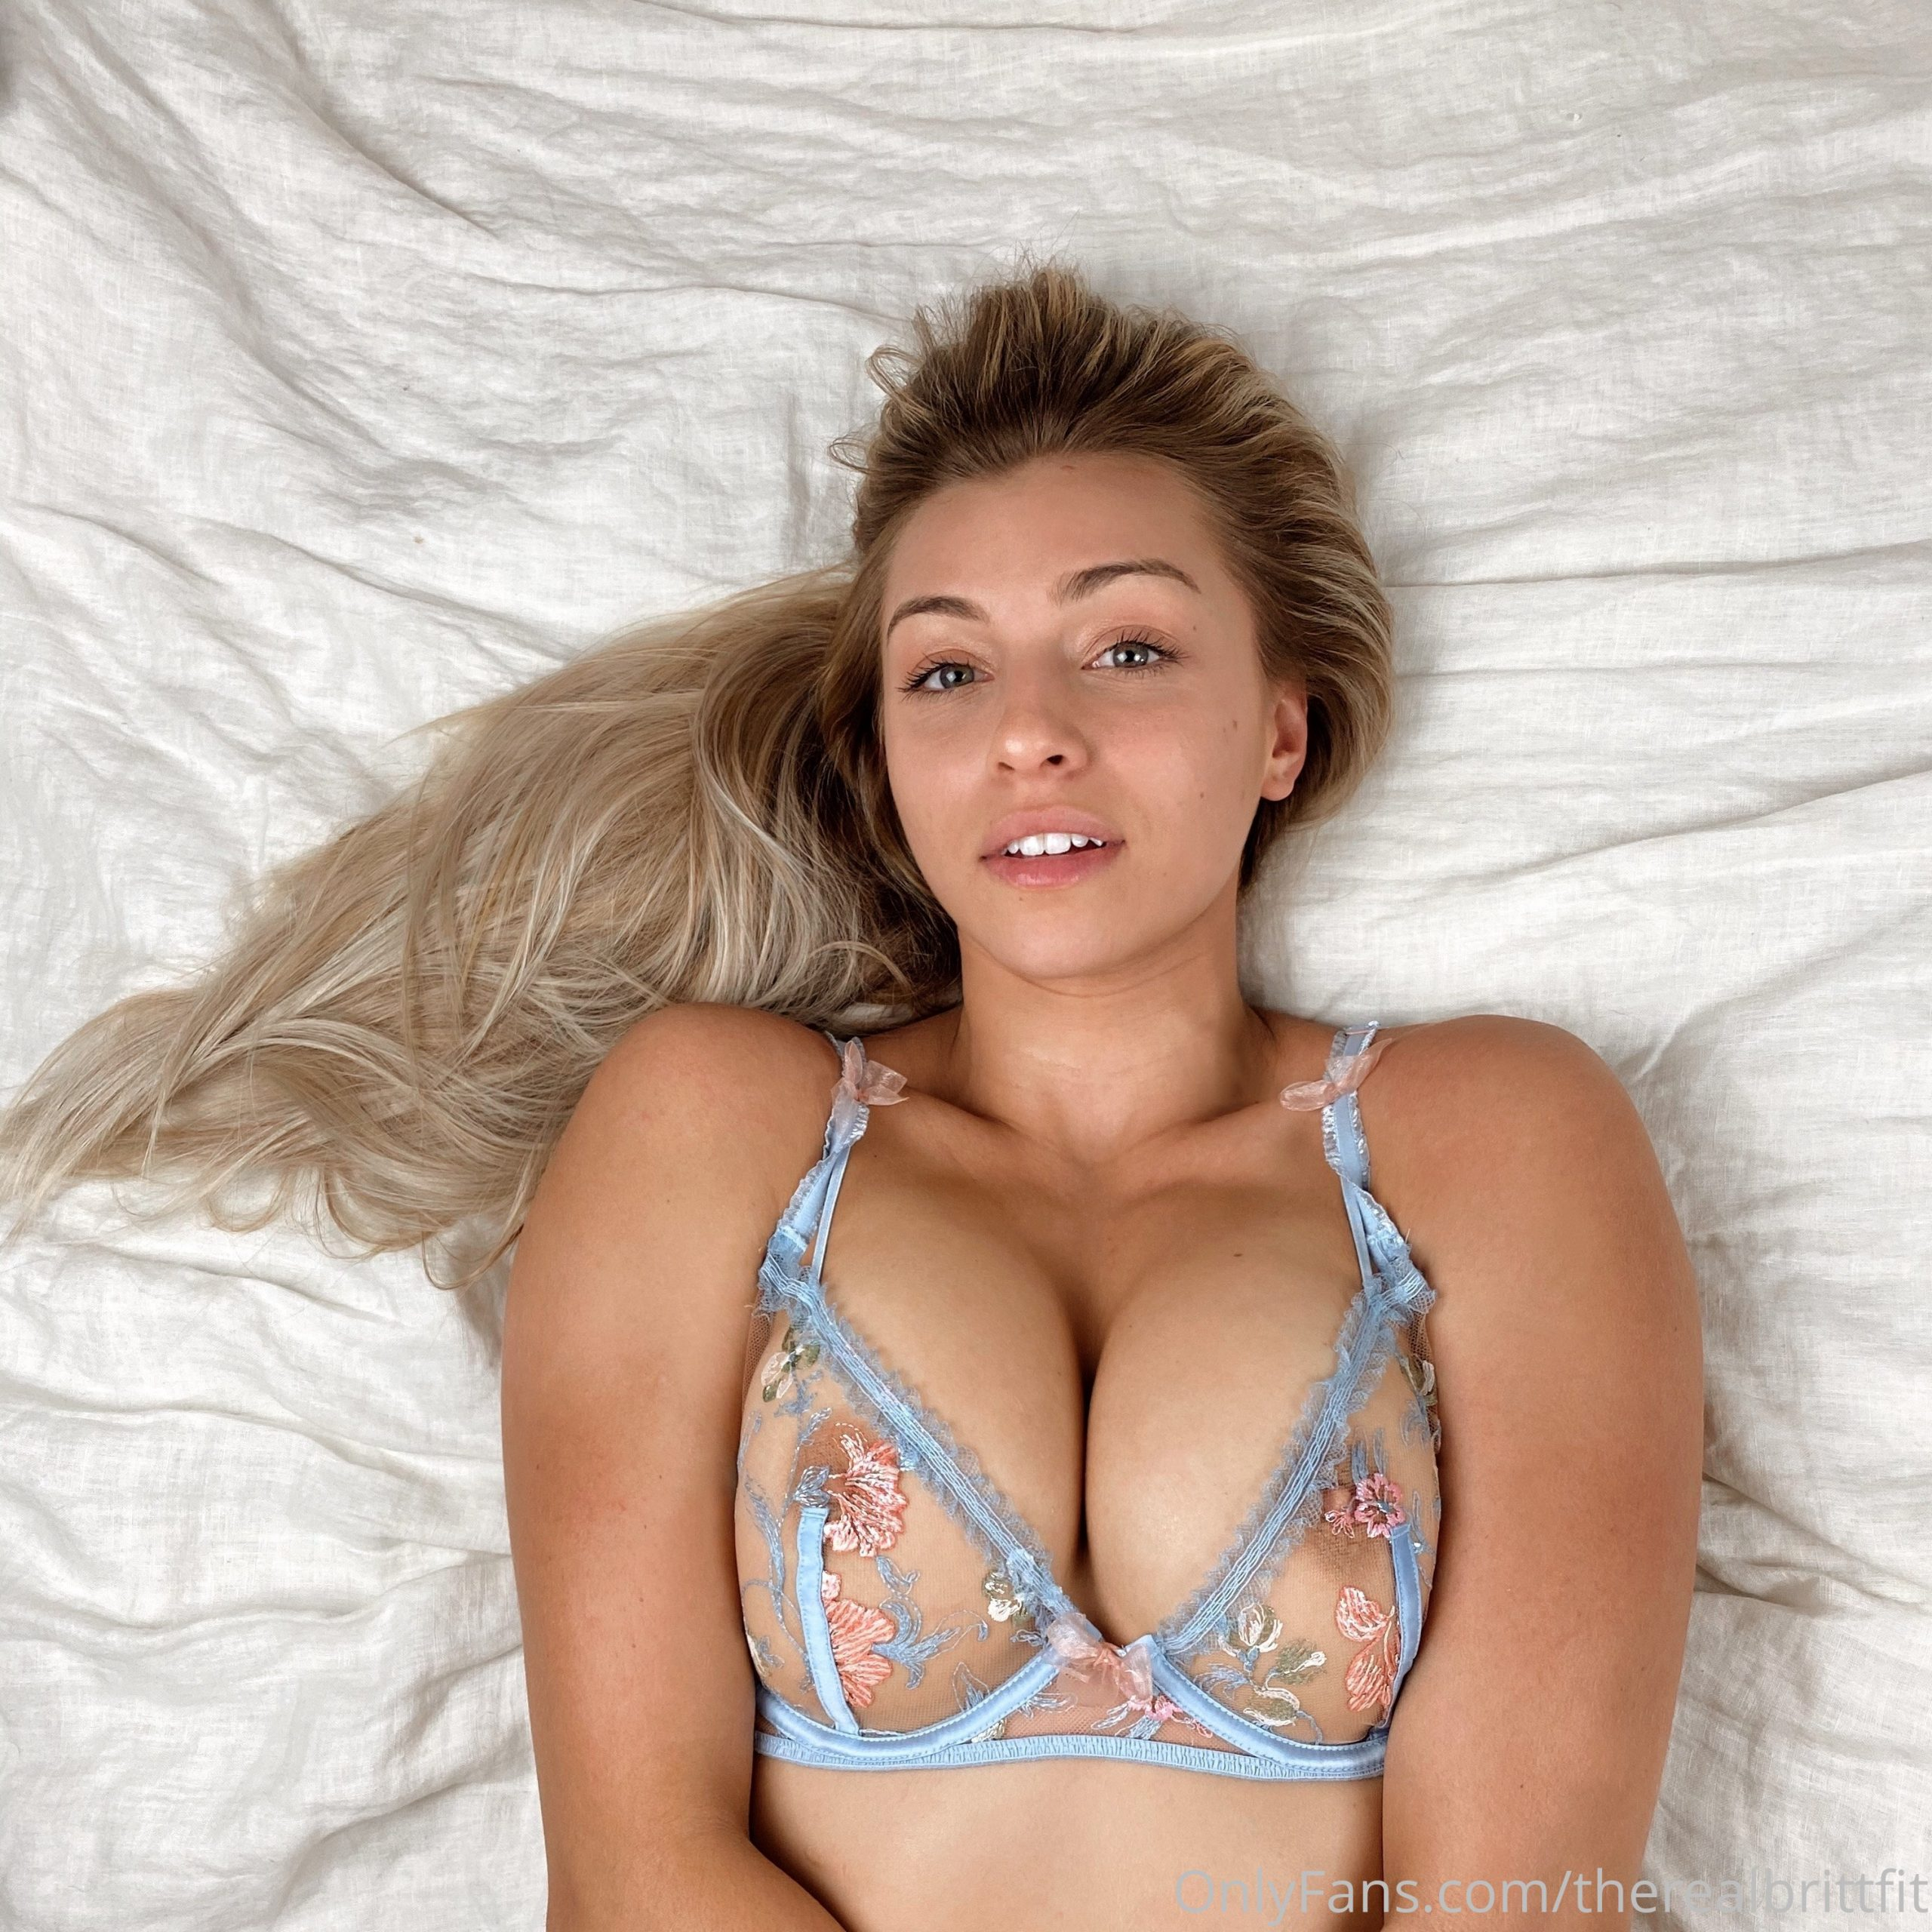 Therealbrittfit Nude Onlyfans Leaked 0007